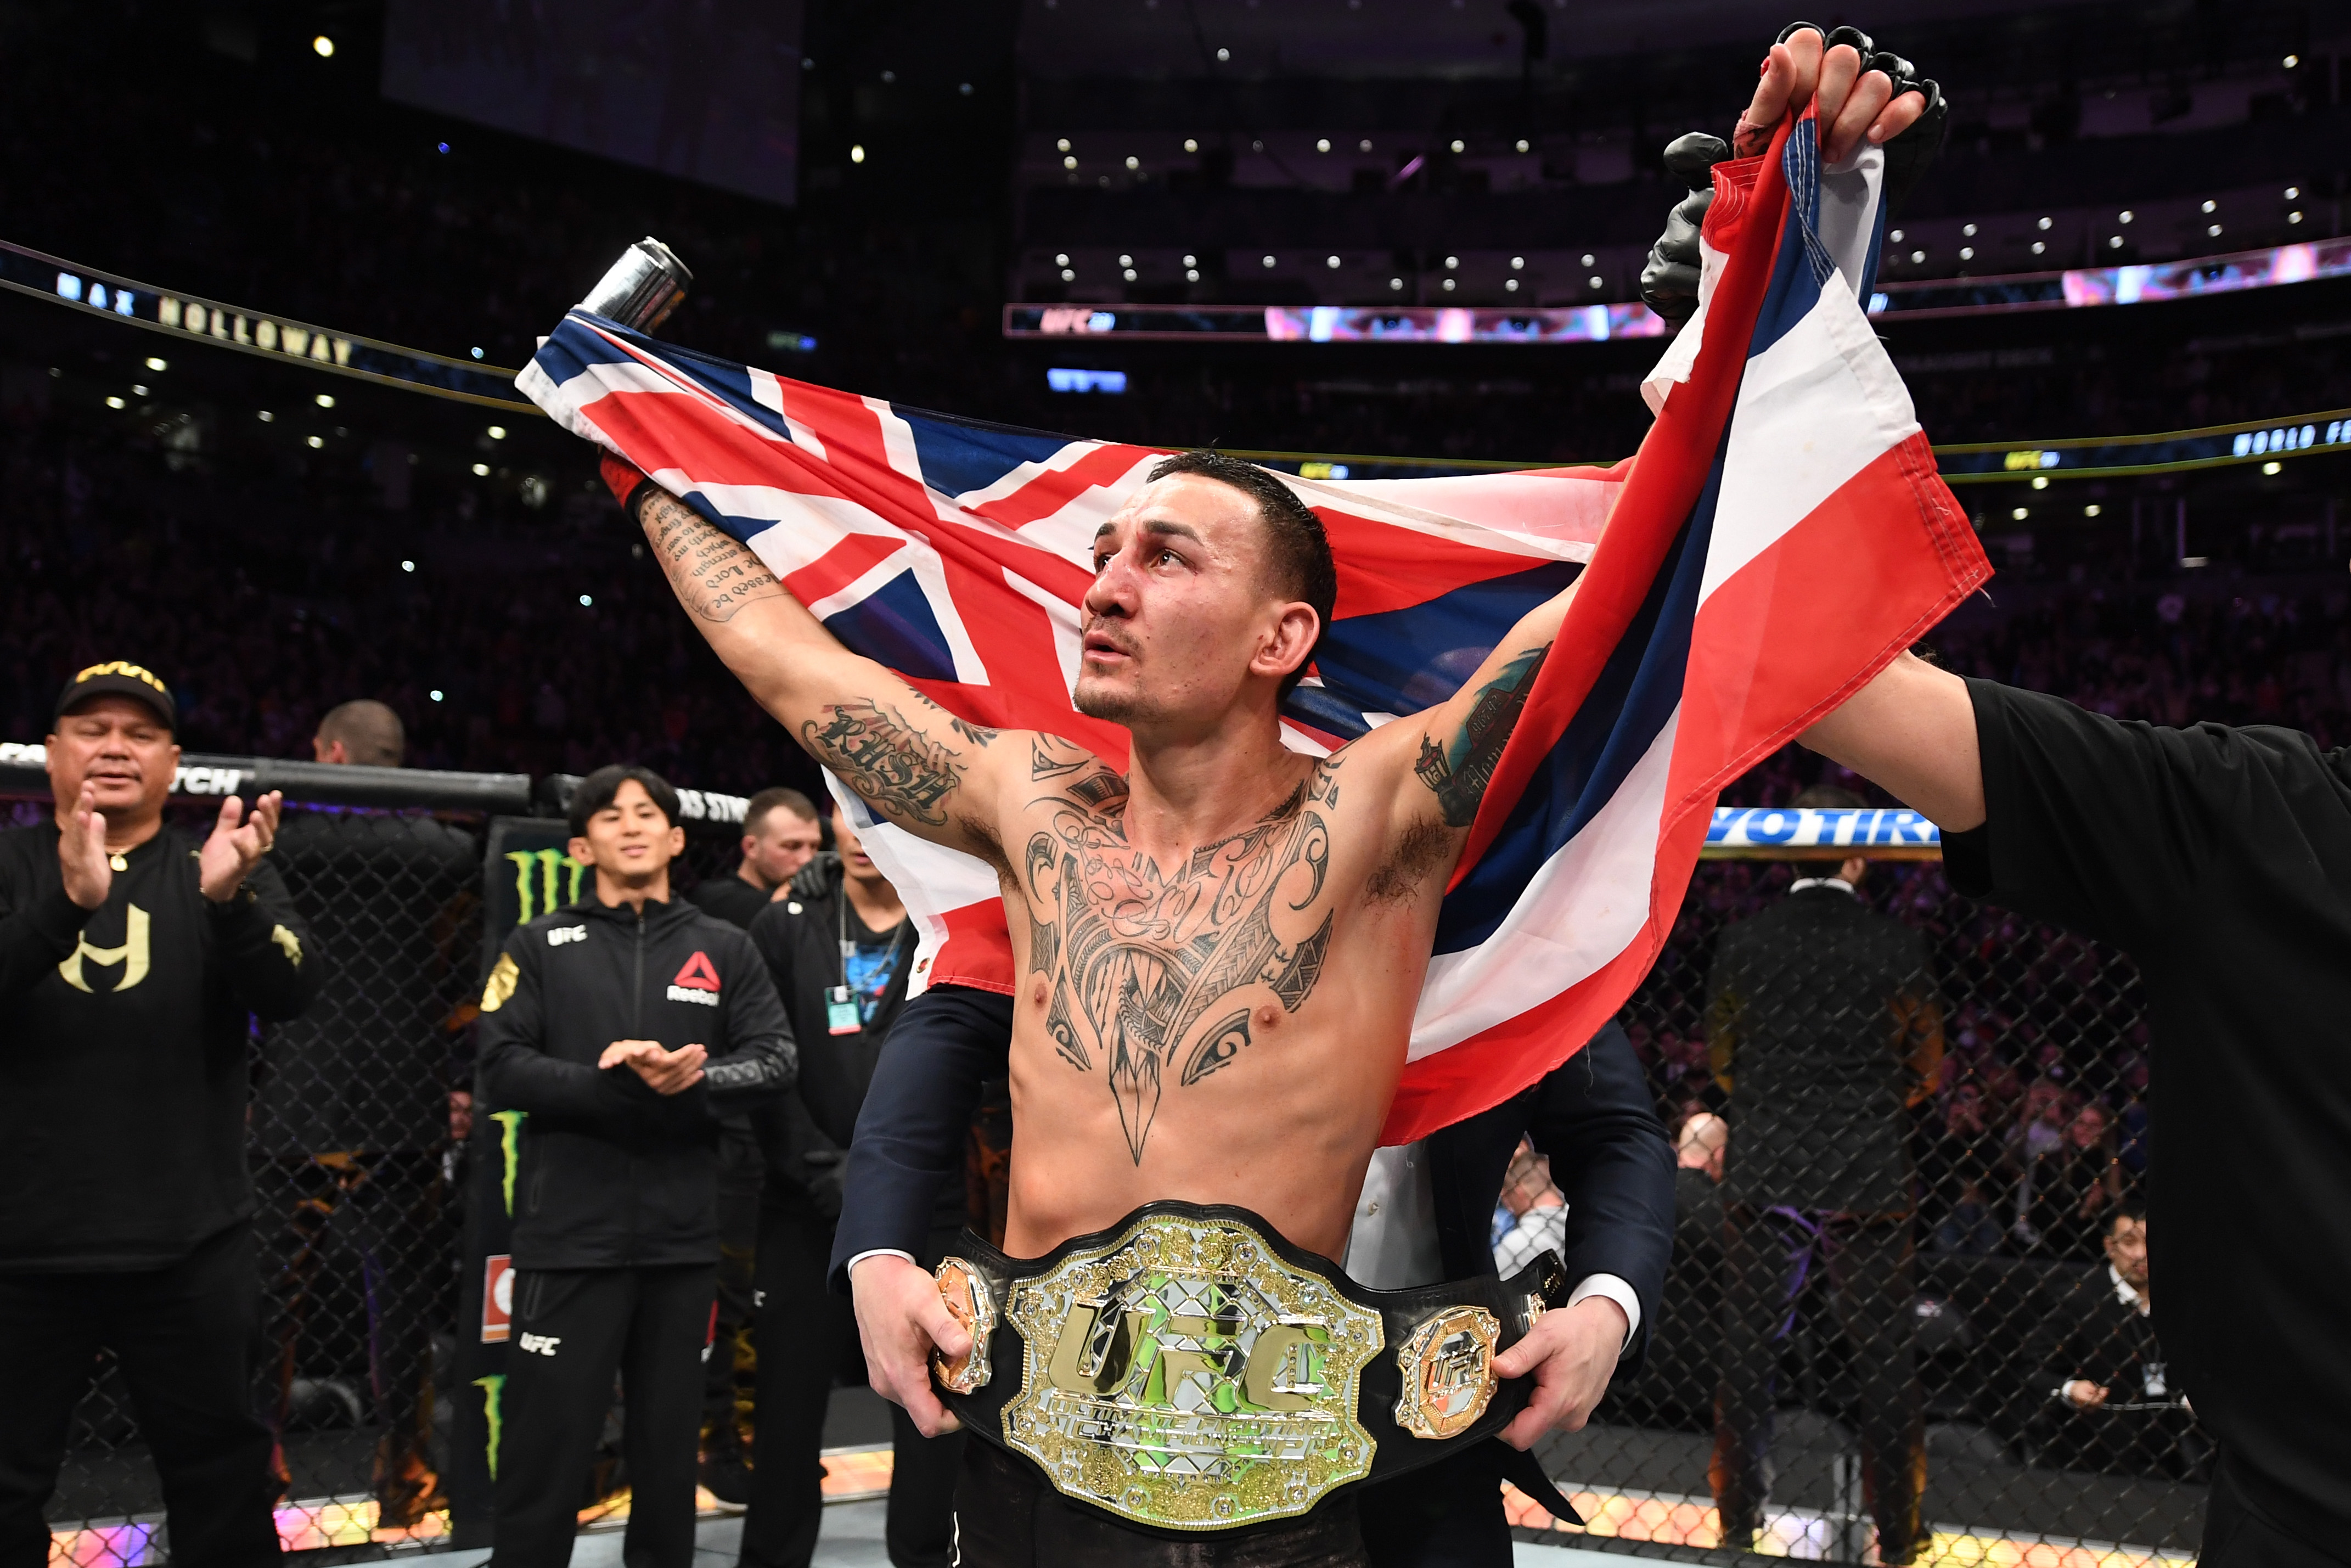 TORONTO, CANADA - DECEMBER 08: Max Holloway celebrates his victory over Brian Ortega in their UFC featherweight championship fight during the UFC 231 event at Scotiabank Arena on December 8, 2018 in Toronto, Canada. (Photo by Josh Hedges/Zuffa LLC/Zuffa LLC via Getty Images)